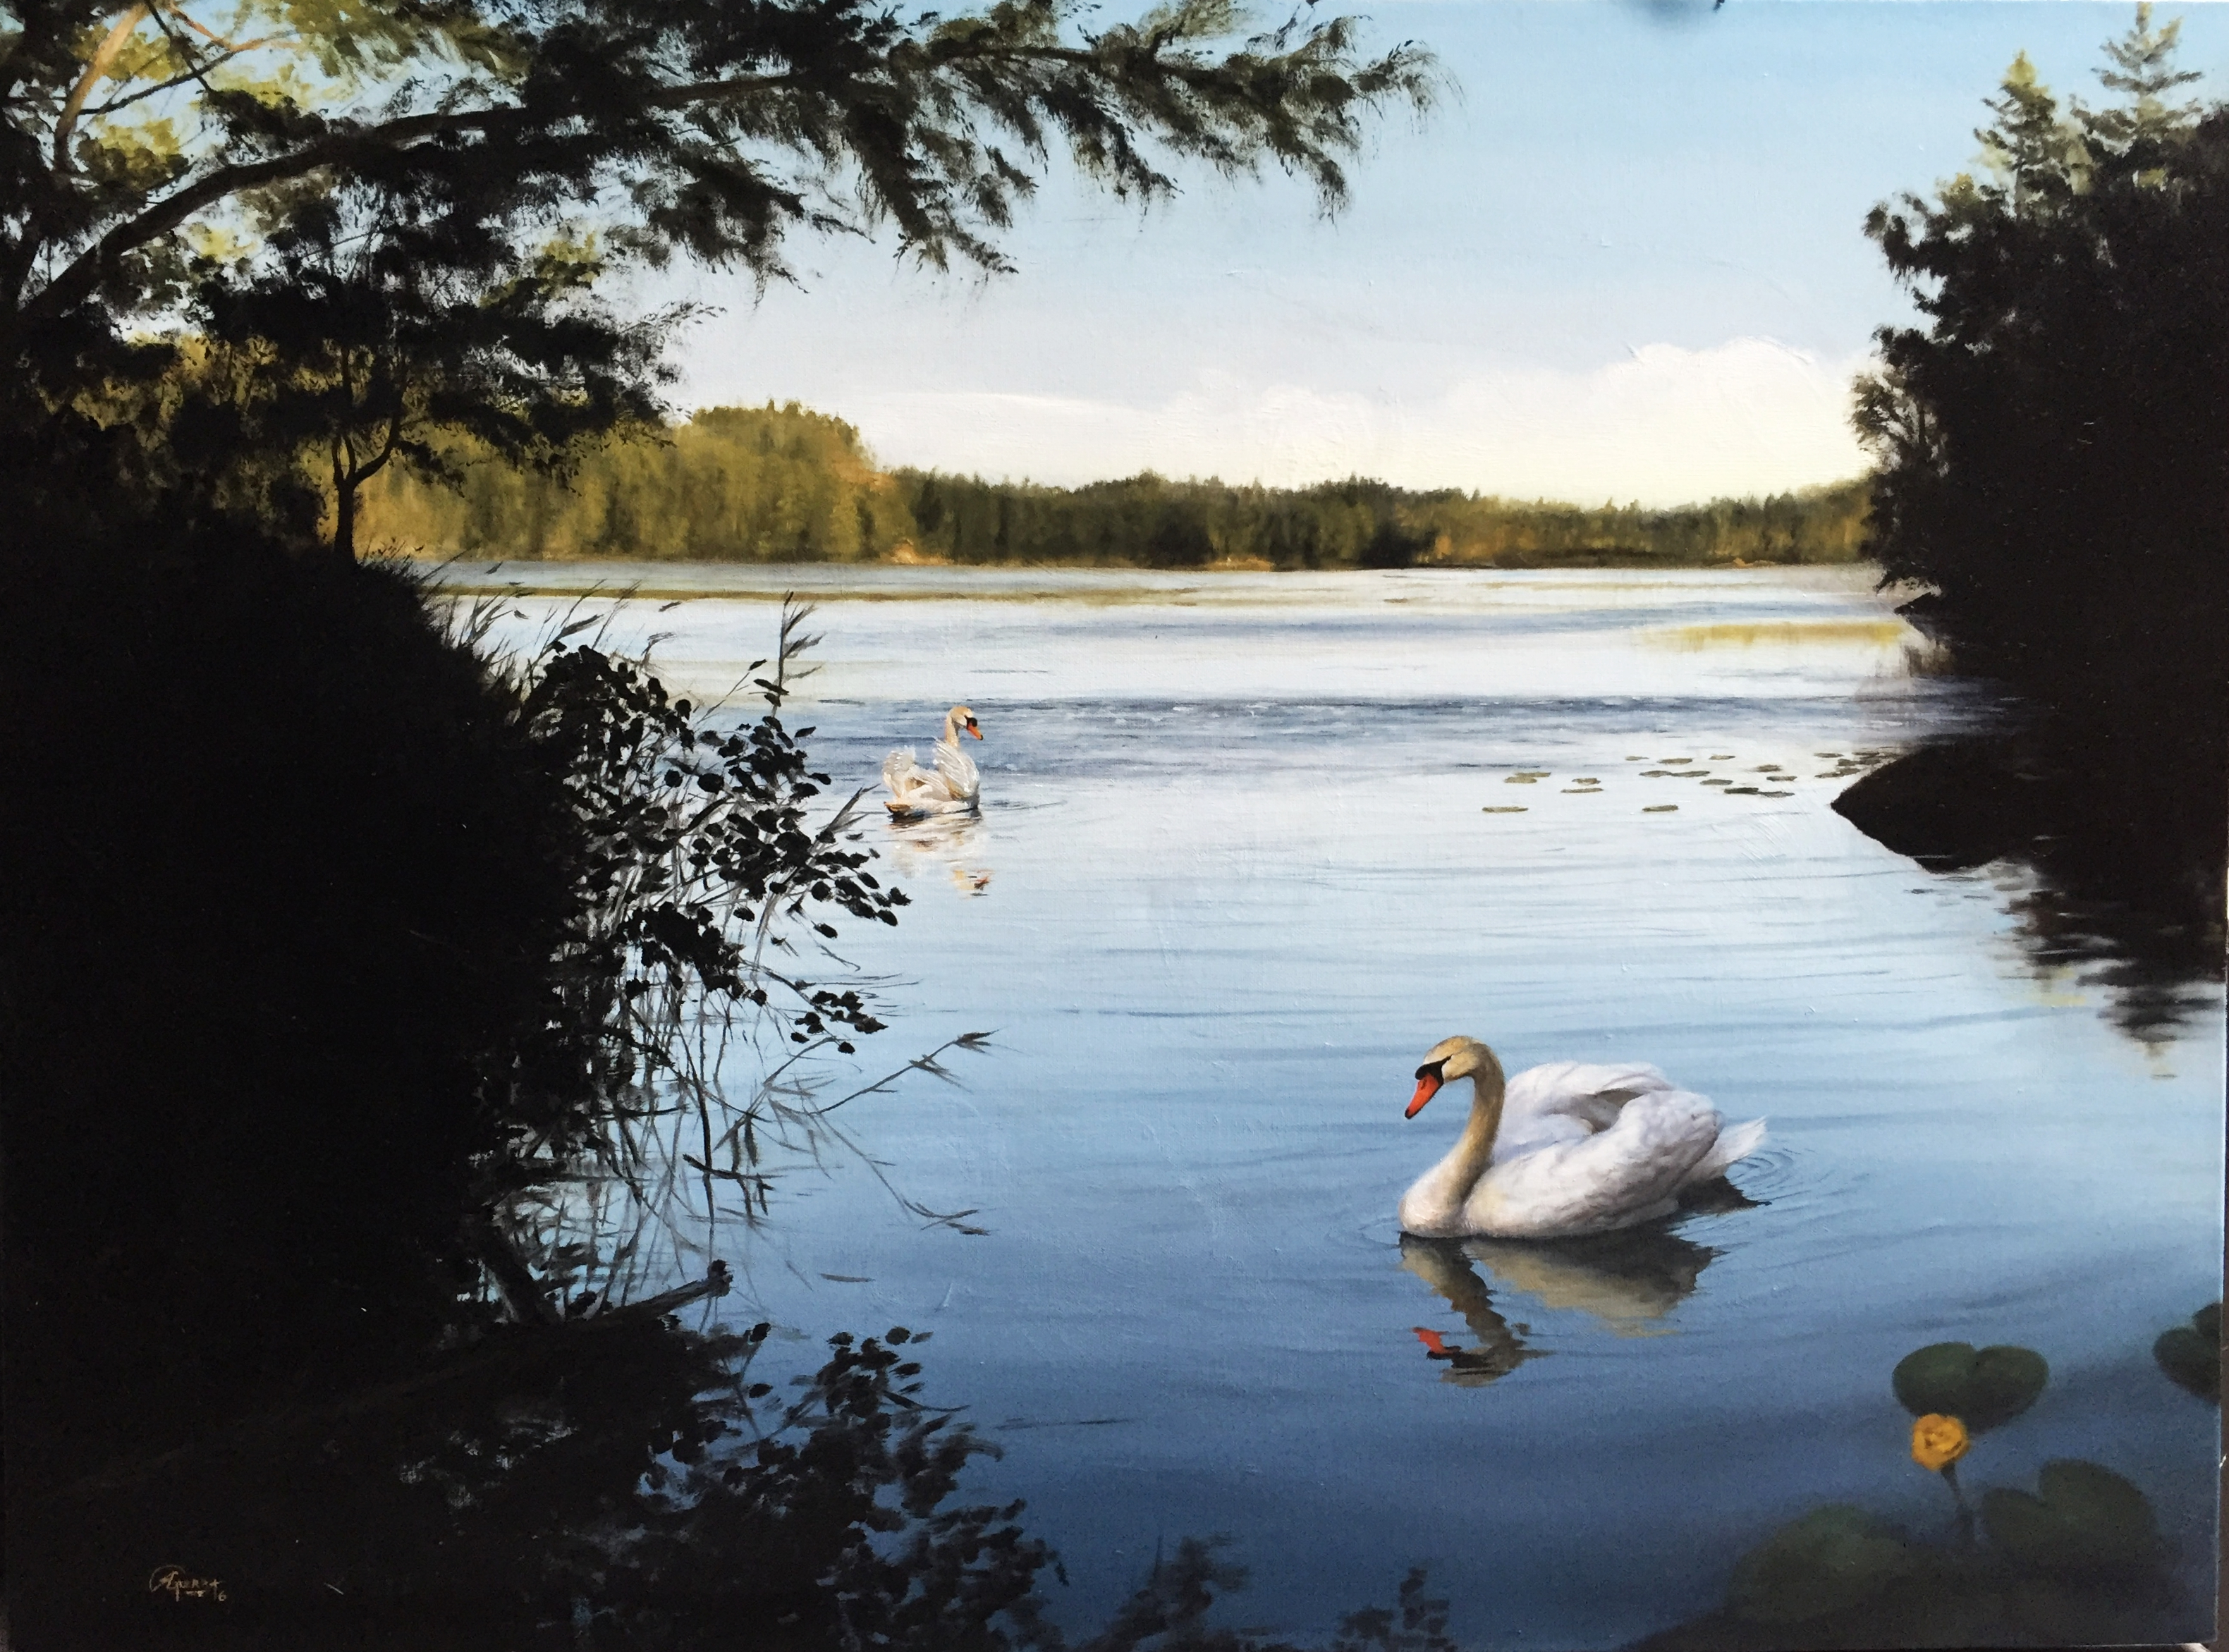 Swans on a Lake in Finland 2, Rafael Guerra